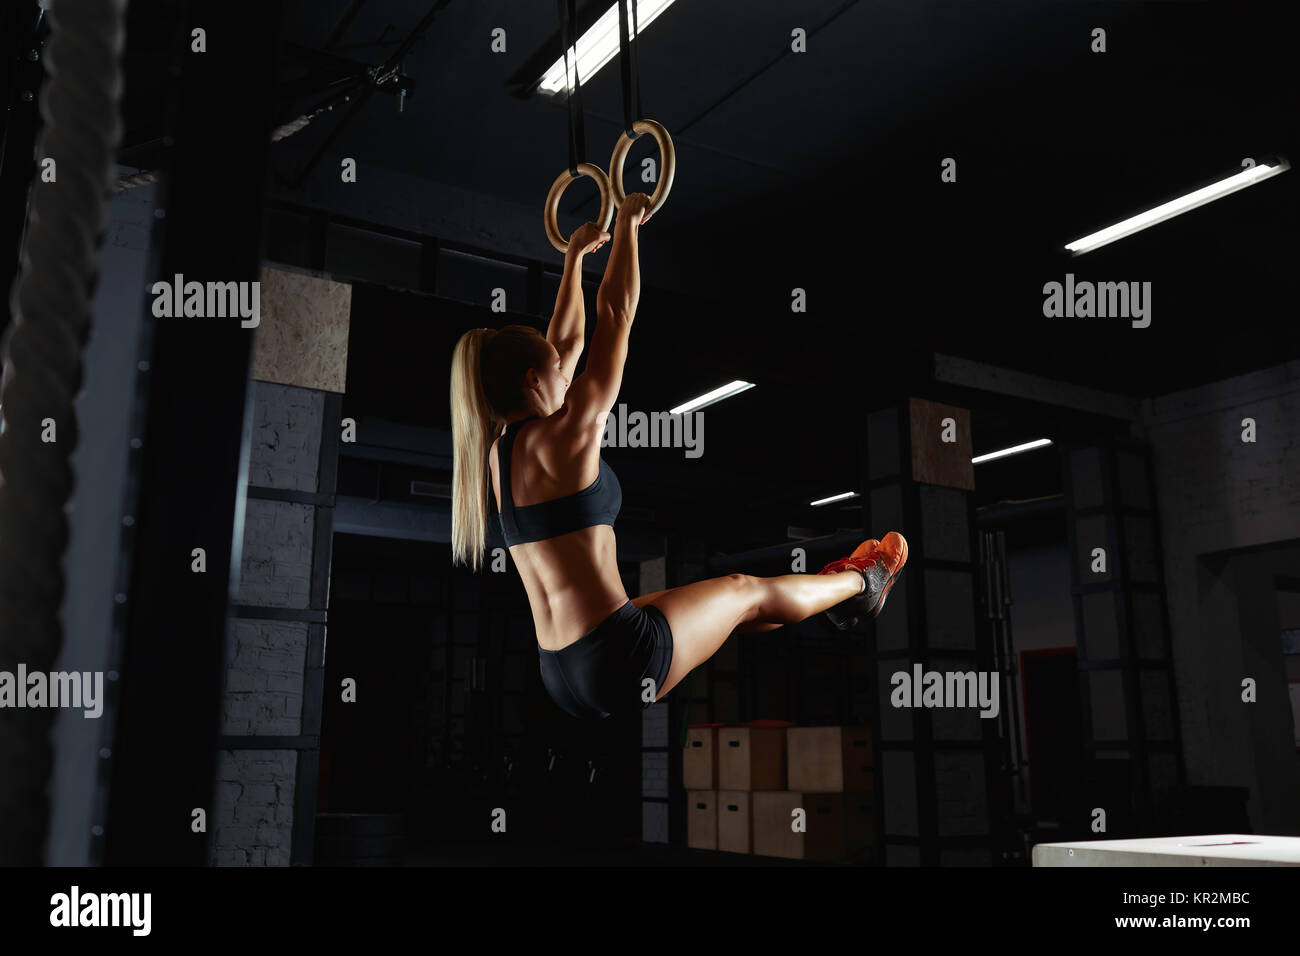 Athletic woman in sports top and shorts working out on gymnastic rings at the gym sportswear equipment strength - Stock Image